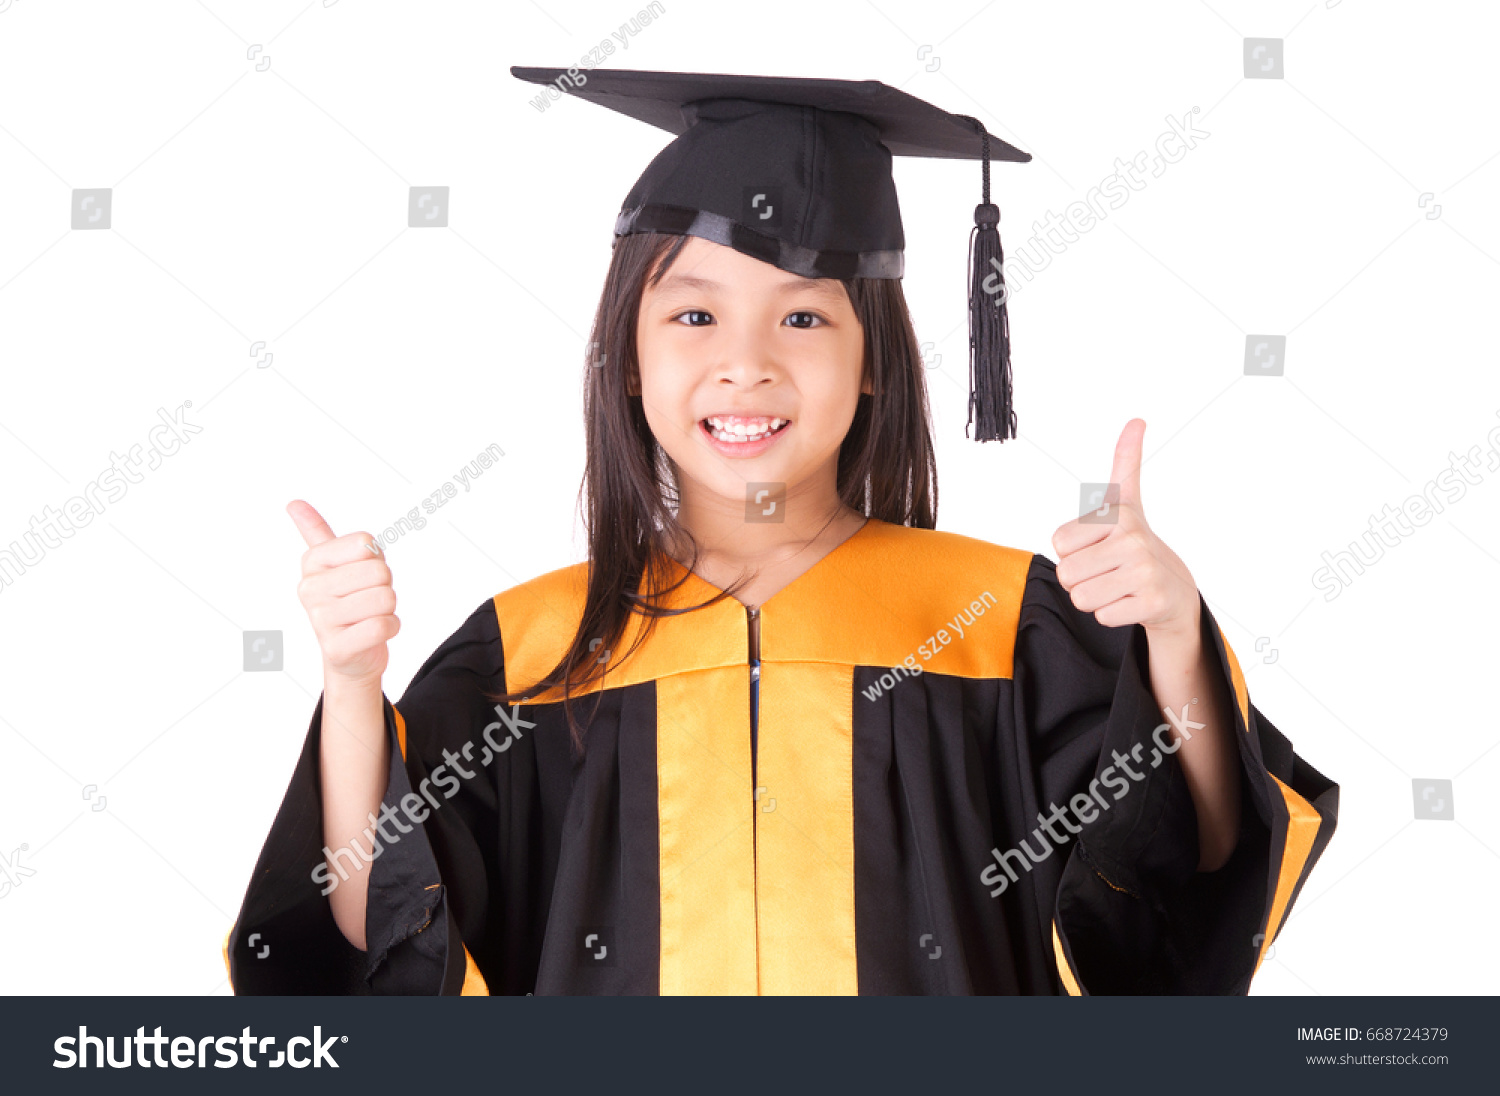 Asian Child Graduation Gown Mortarboard On Stock Photo (Edit Now ...